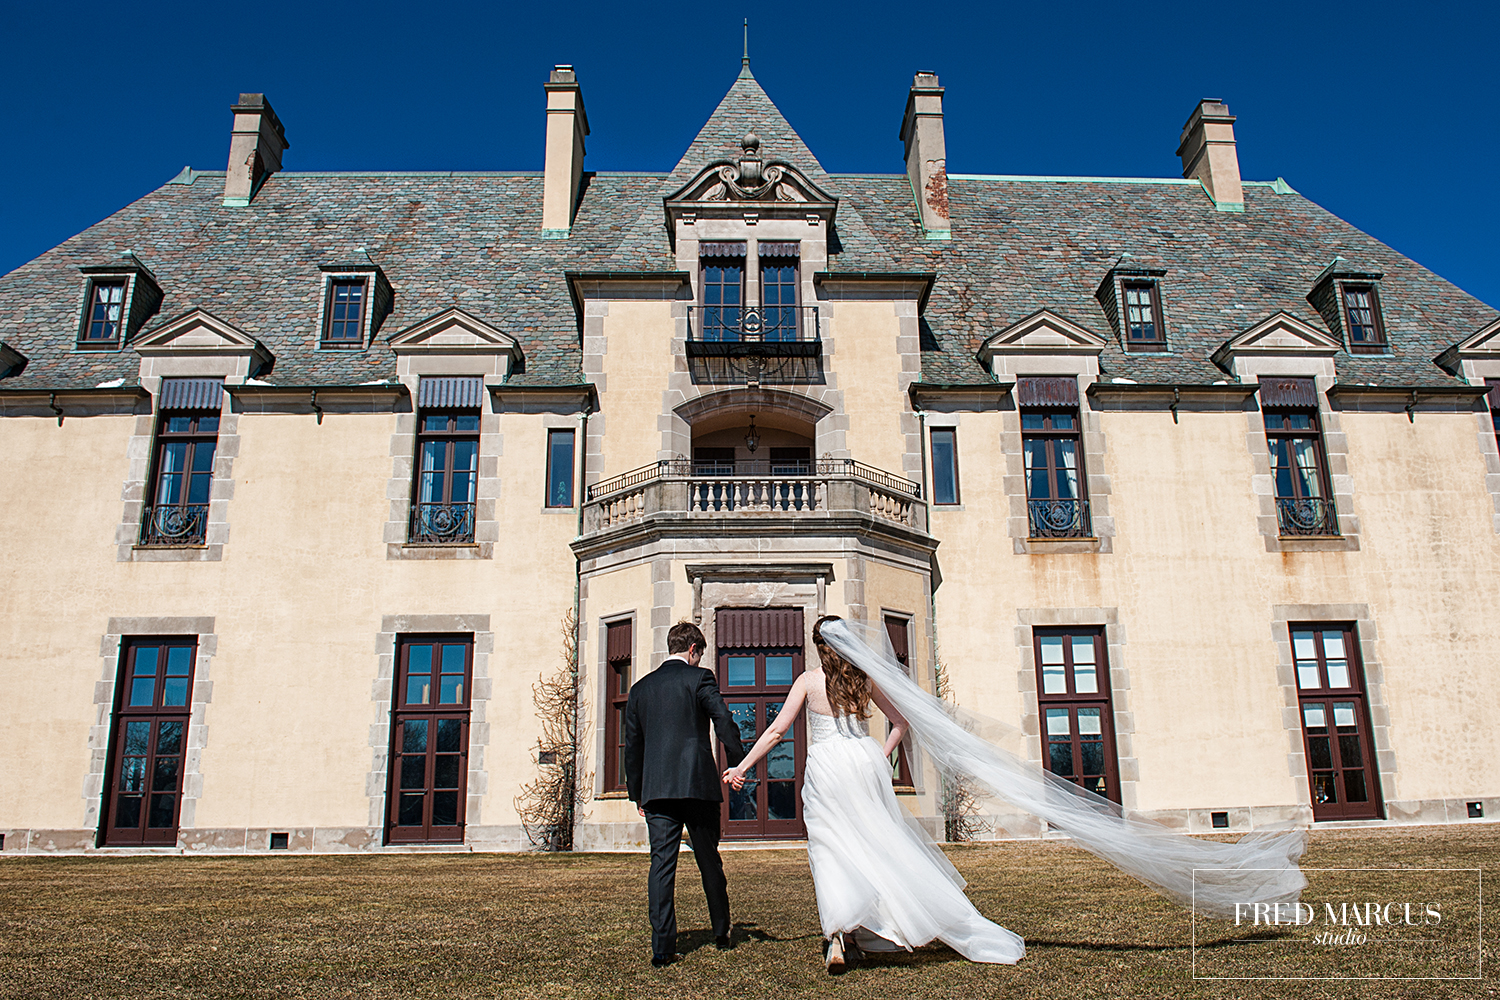 Wedding Wednesday: Brad & Arielle, Oheka Castle